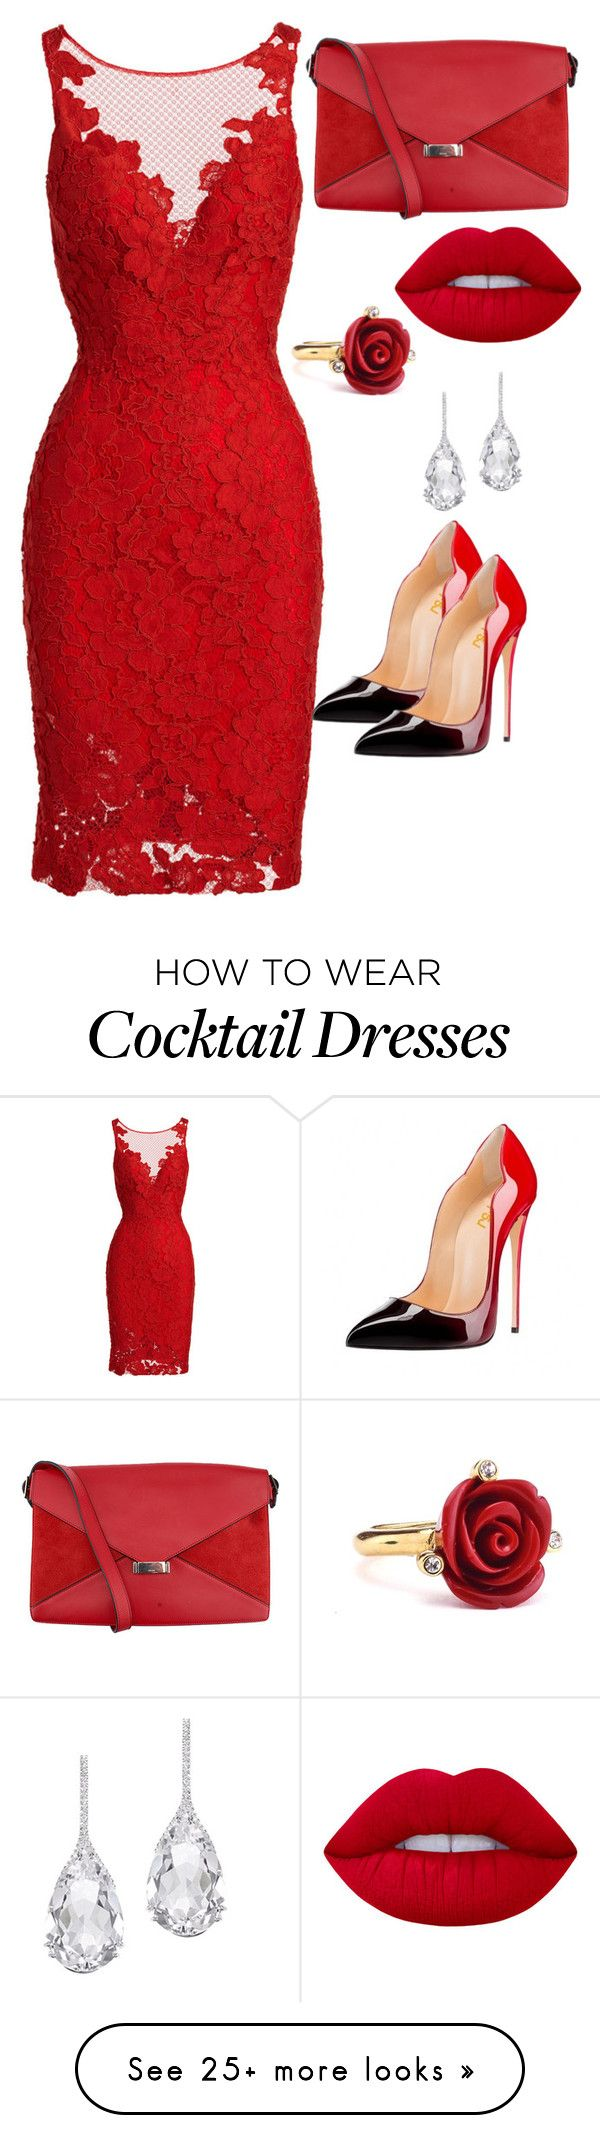 """RED LOVE"" by angela-davis-monroe on Polyvore featuring ML Monique Lhuillier, CÉLINE, Lime Crime, Oscar de la Renta, Plukka, rockerchic and rockerstyle"